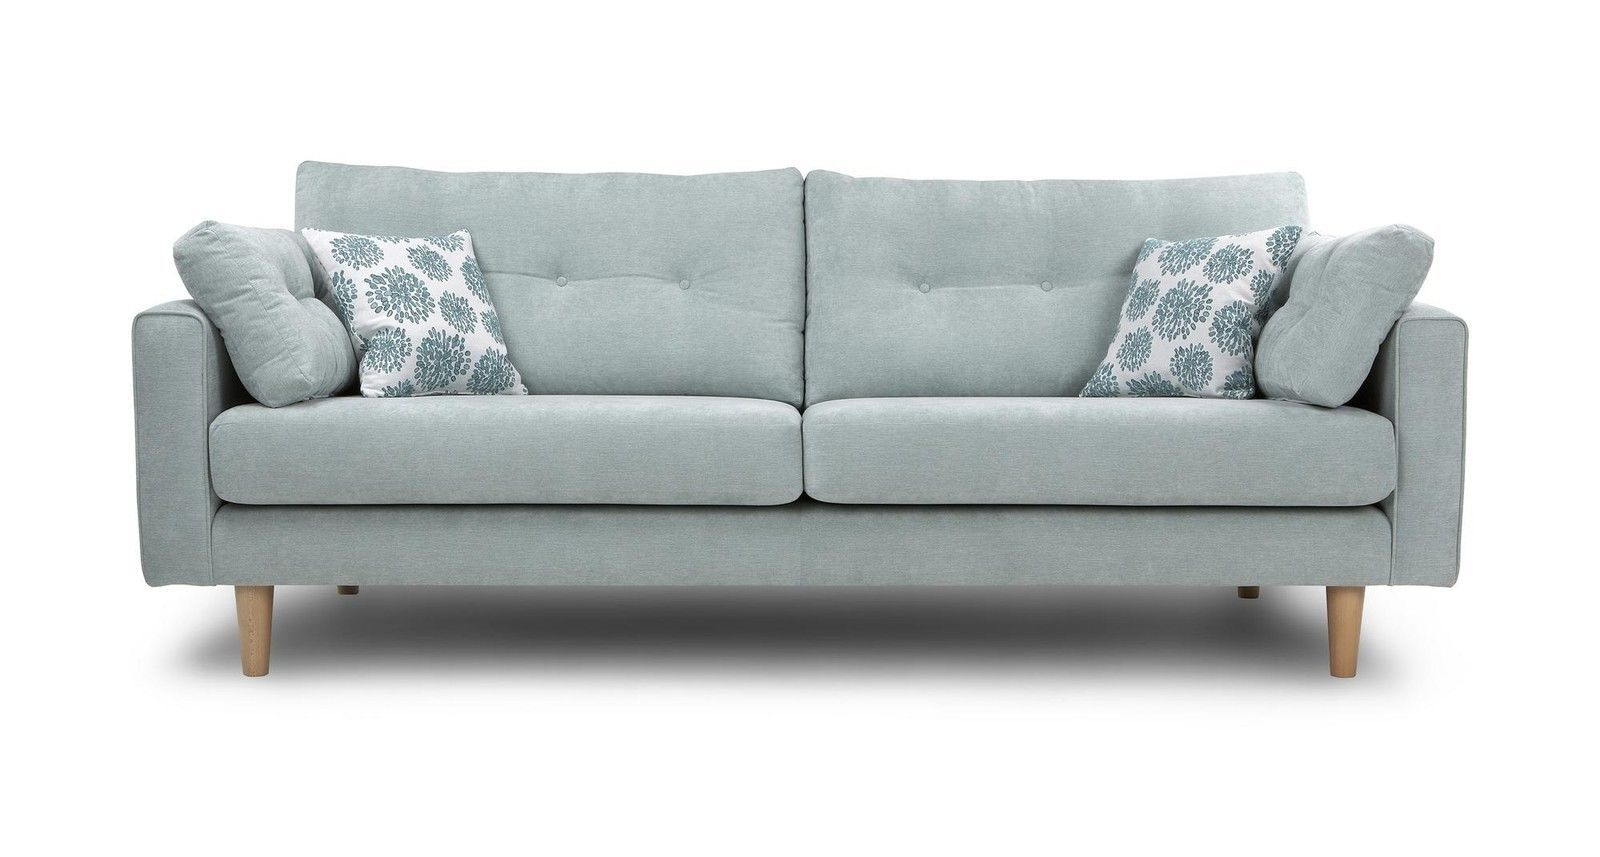 Dfs Poet Sky Fabric 4 Seater Sofa 57551 Sofa Fabric Sofa Seater Sofa